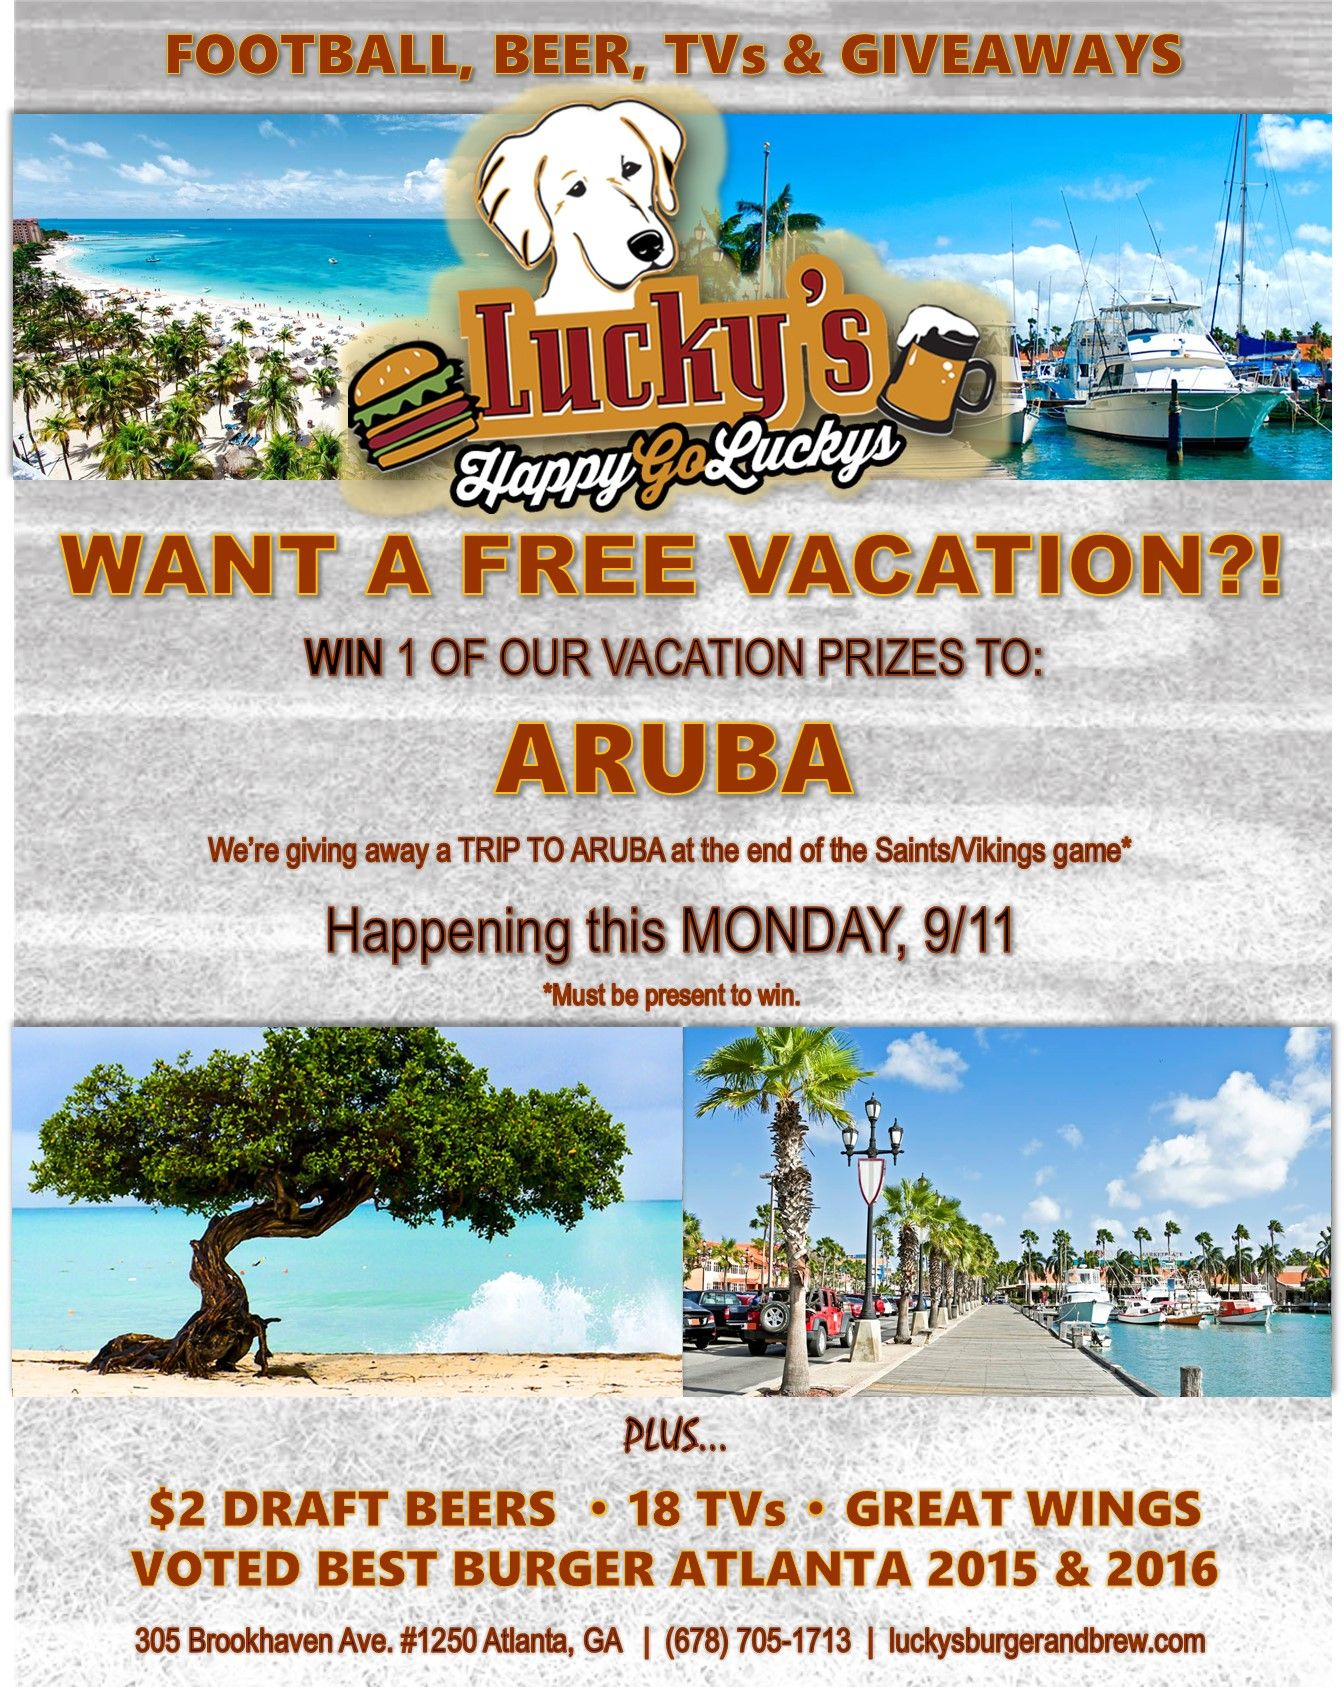 TOMORROW 9/11, you could win a FREE VACATION to Aruba! ️